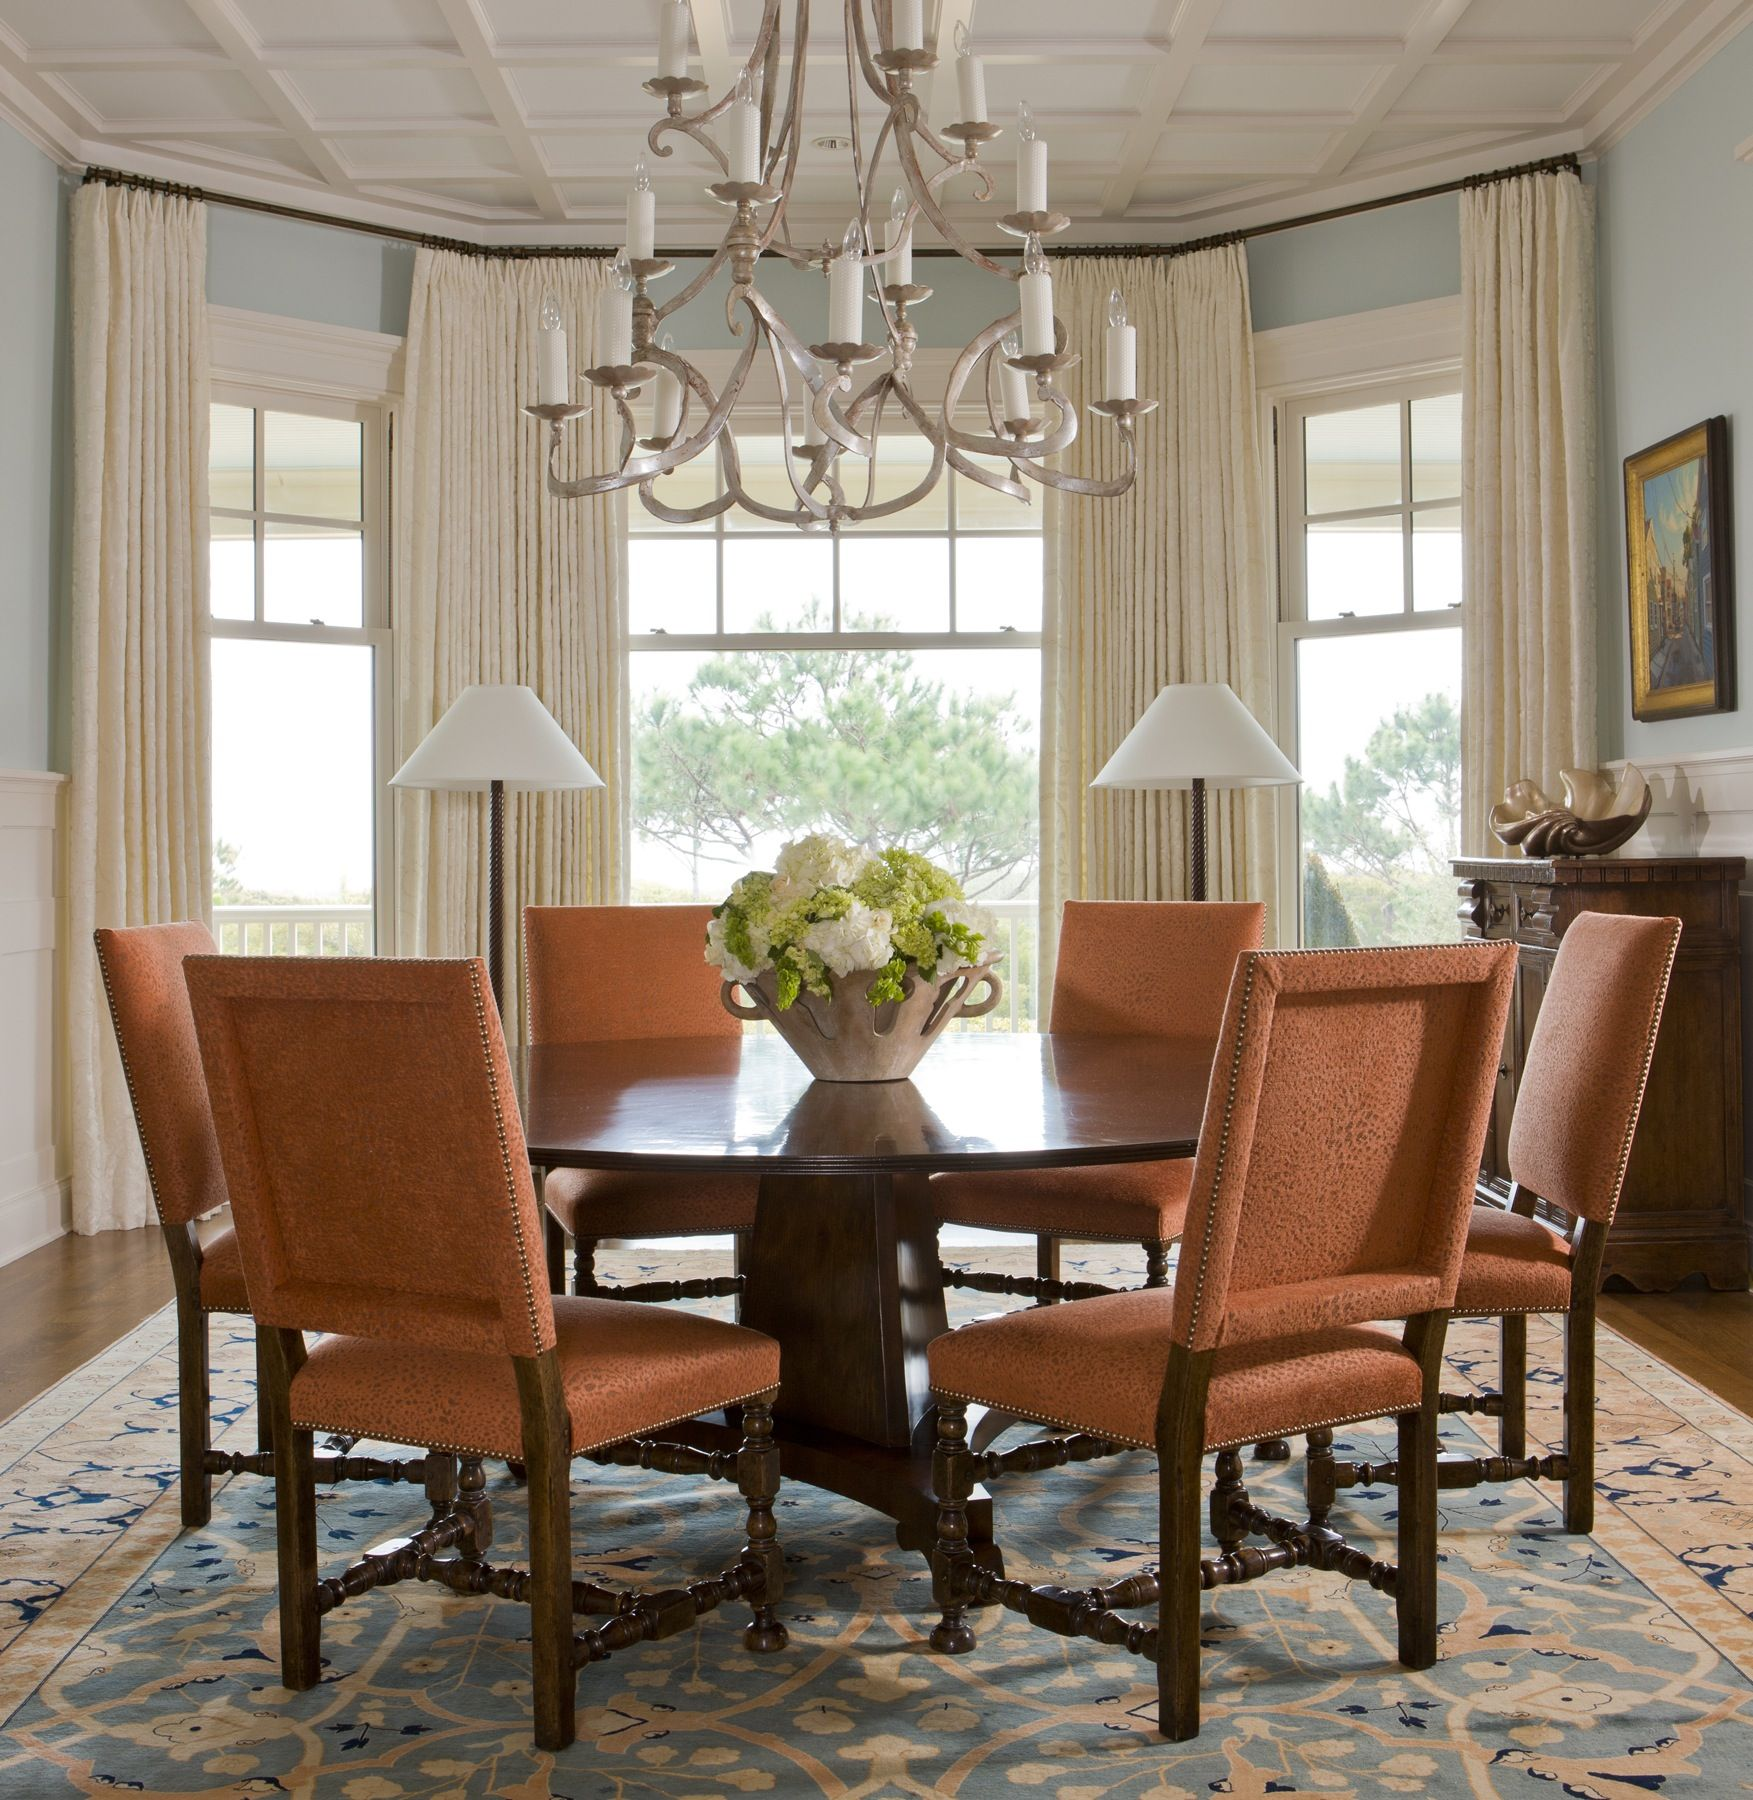 Chairish   Dining room window treatments, Dining room windows ...